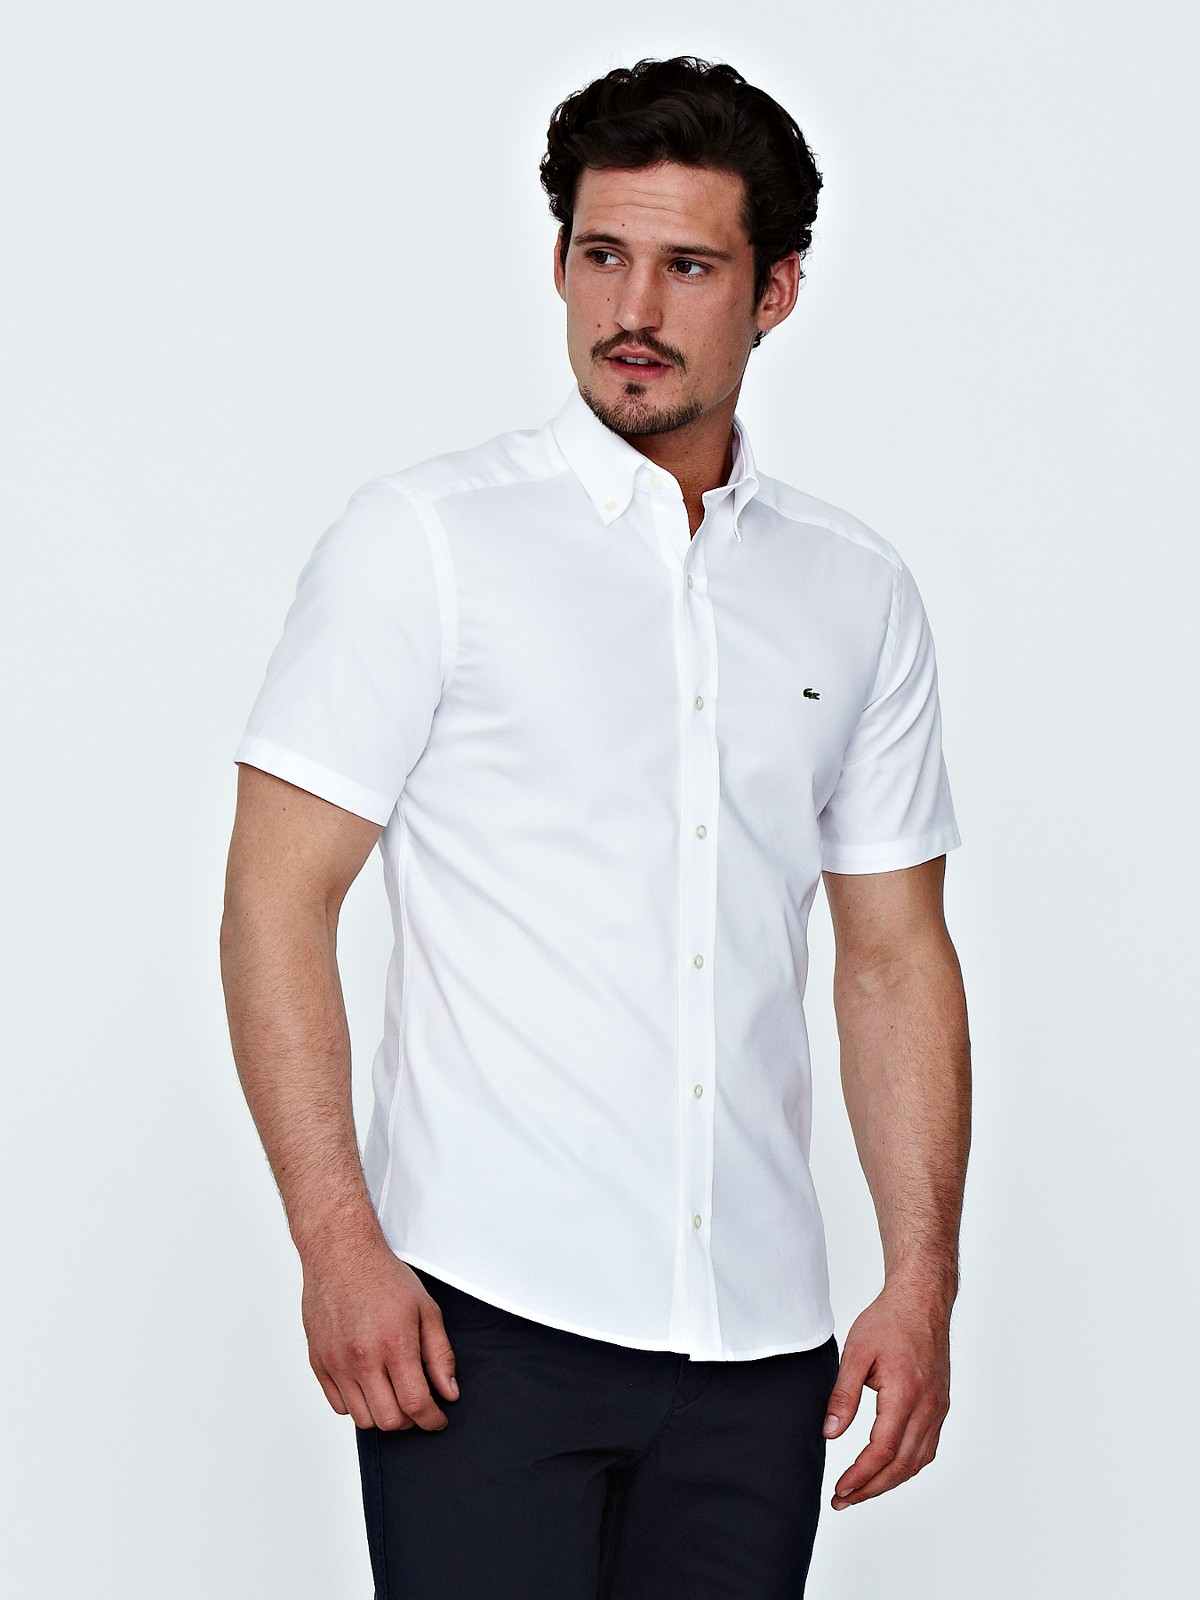 Lacoste mens short sleeve oxford shirt in white for men lyst for White oxford shirt mens